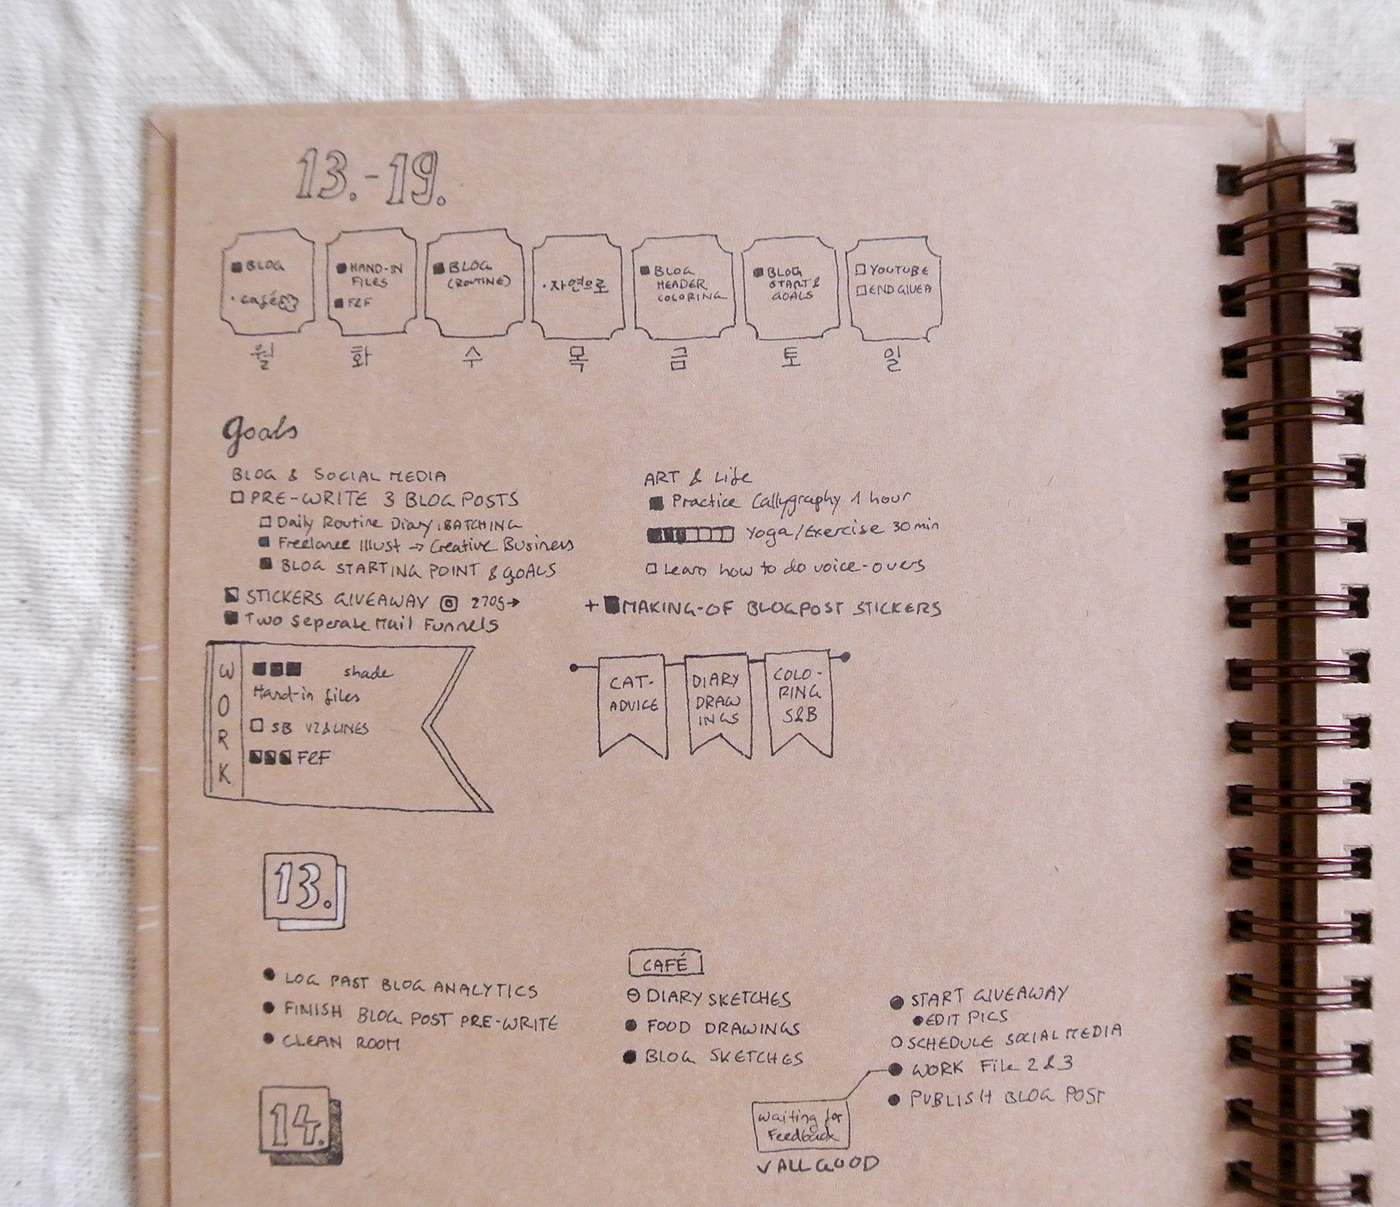 Bullet journal weekly overview for February. I love organizing my different tasks according to their fields - work, personal projects, blogging... that one little habit tracker for yoga and exercising looks sad, though.